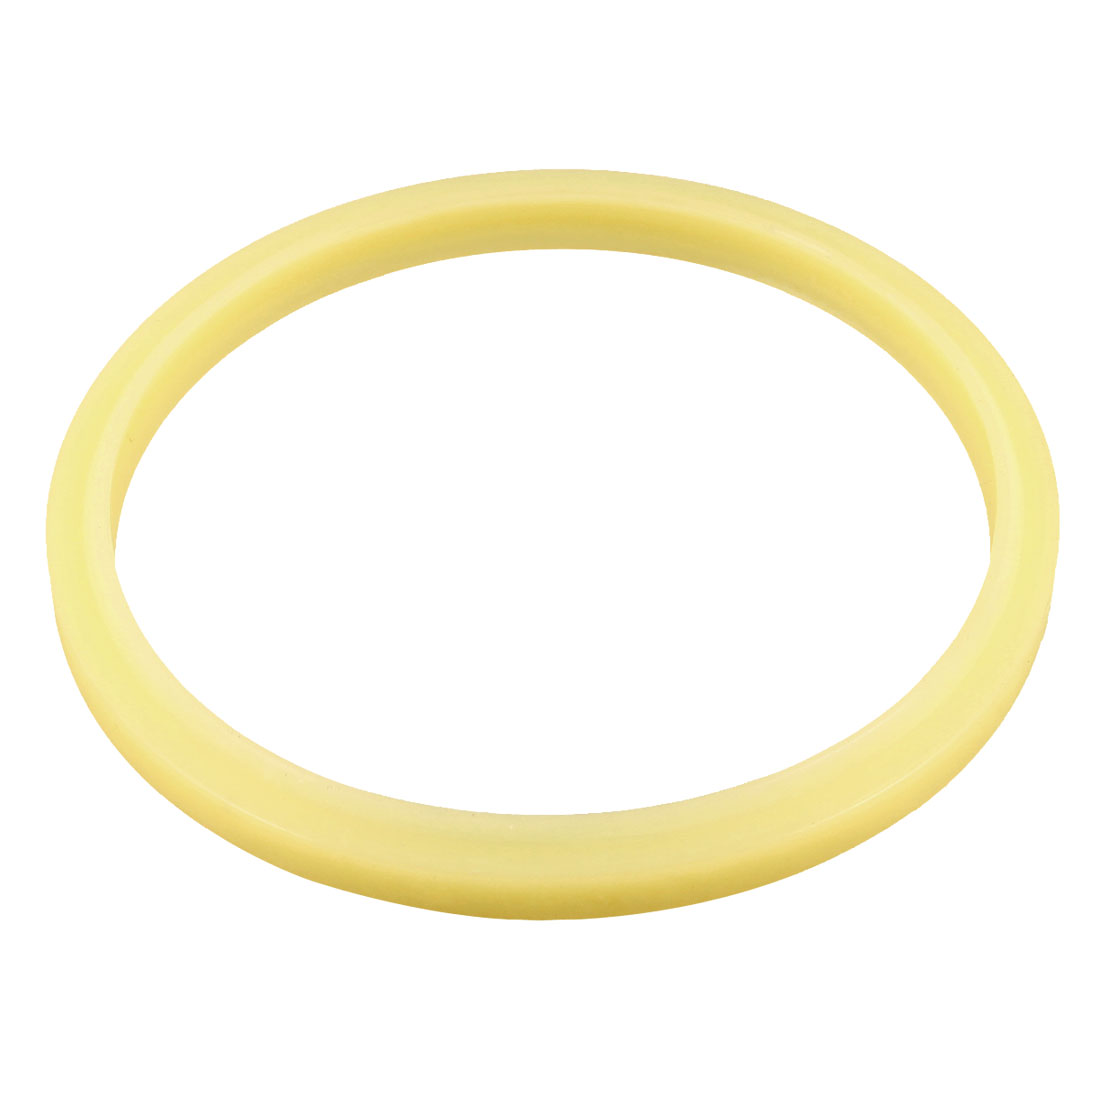 67mm x 75mm x 6.5mm Polyurethane UHS Oil Seal Rings Sealing Gasket